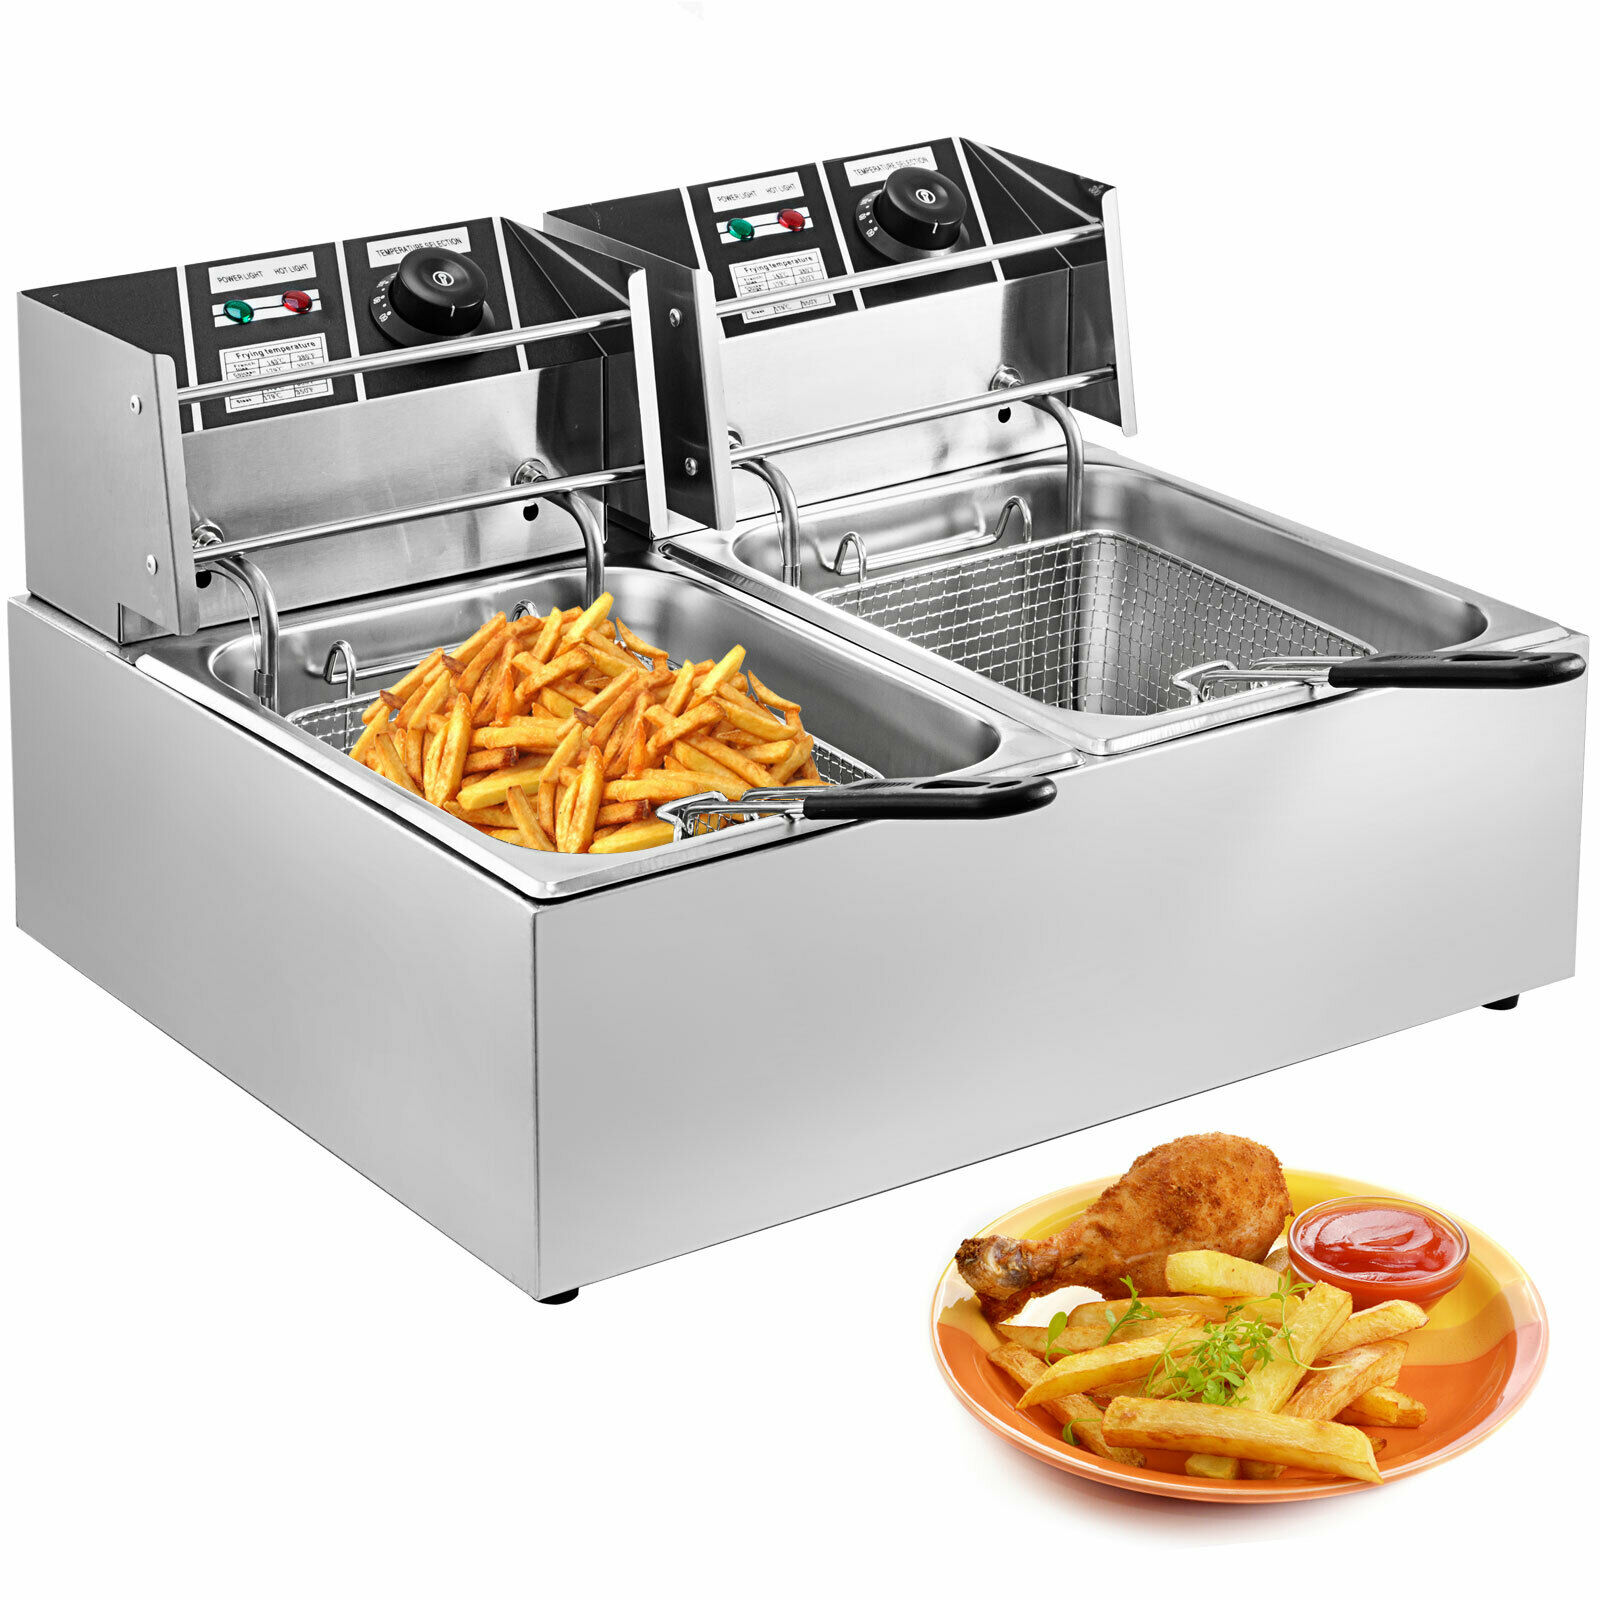 Commercial Deep Fryer 2x6L Stainless Steel Commercial Twin Double Tank Electric Deep Fat Fryer Basket With FREE SHIPPING